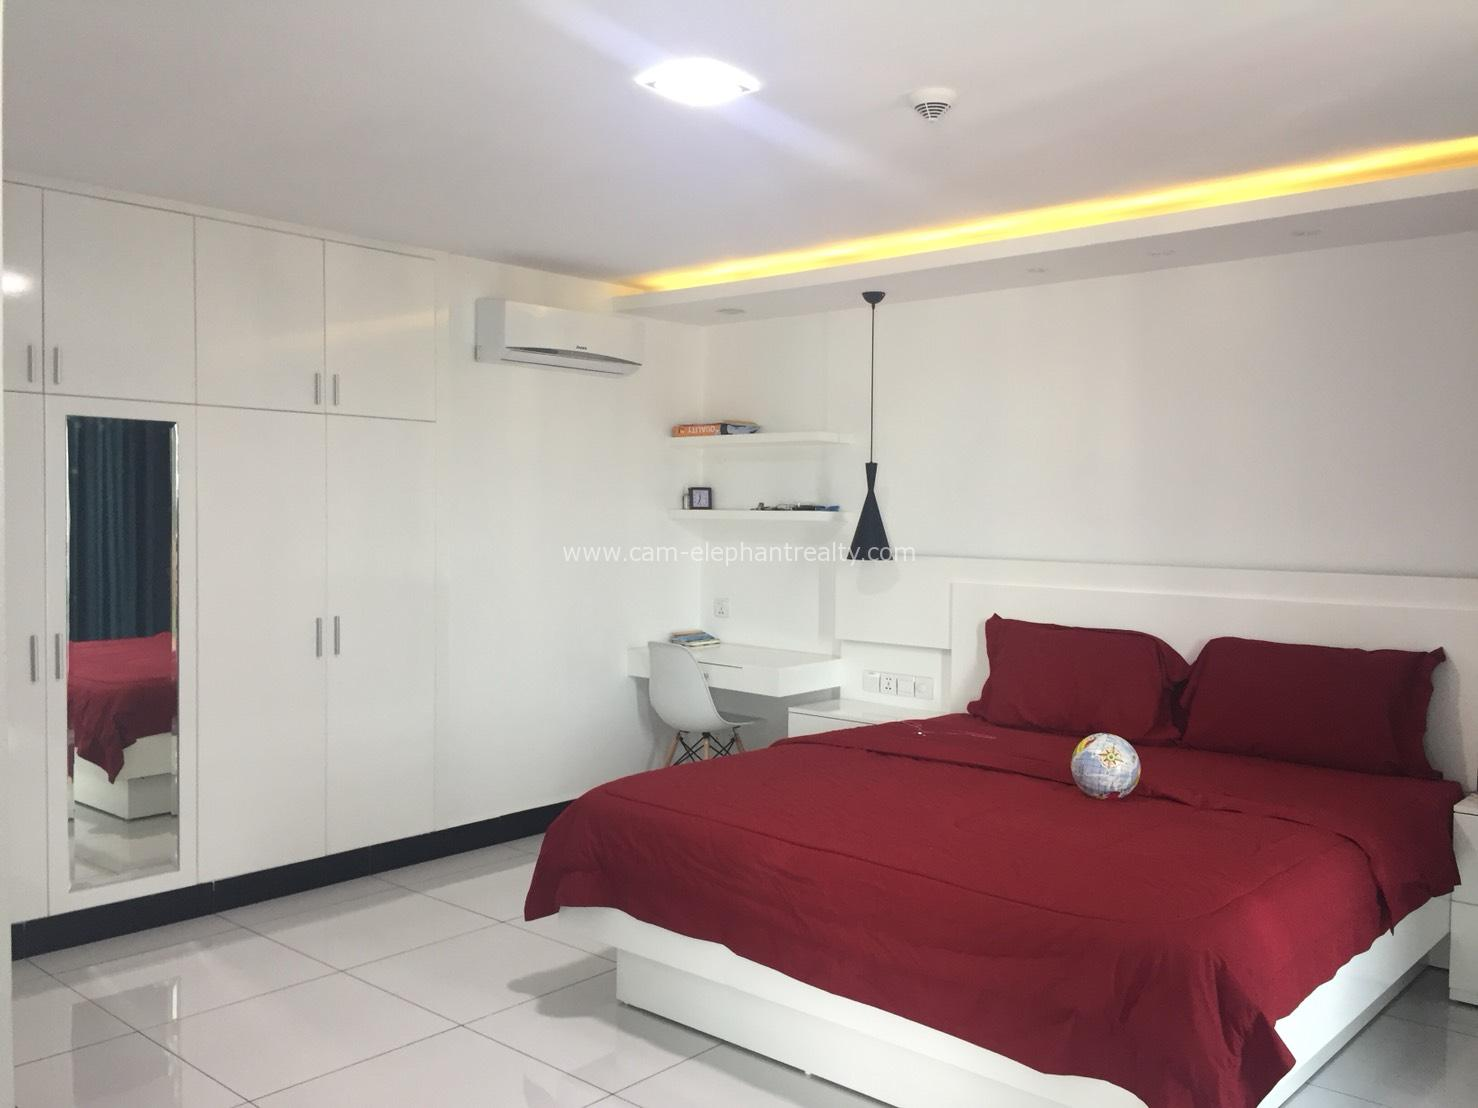 Modern Pool & Gym Penhouse Apartment For Rent In BKK3,3 Bedroom=$2200/m